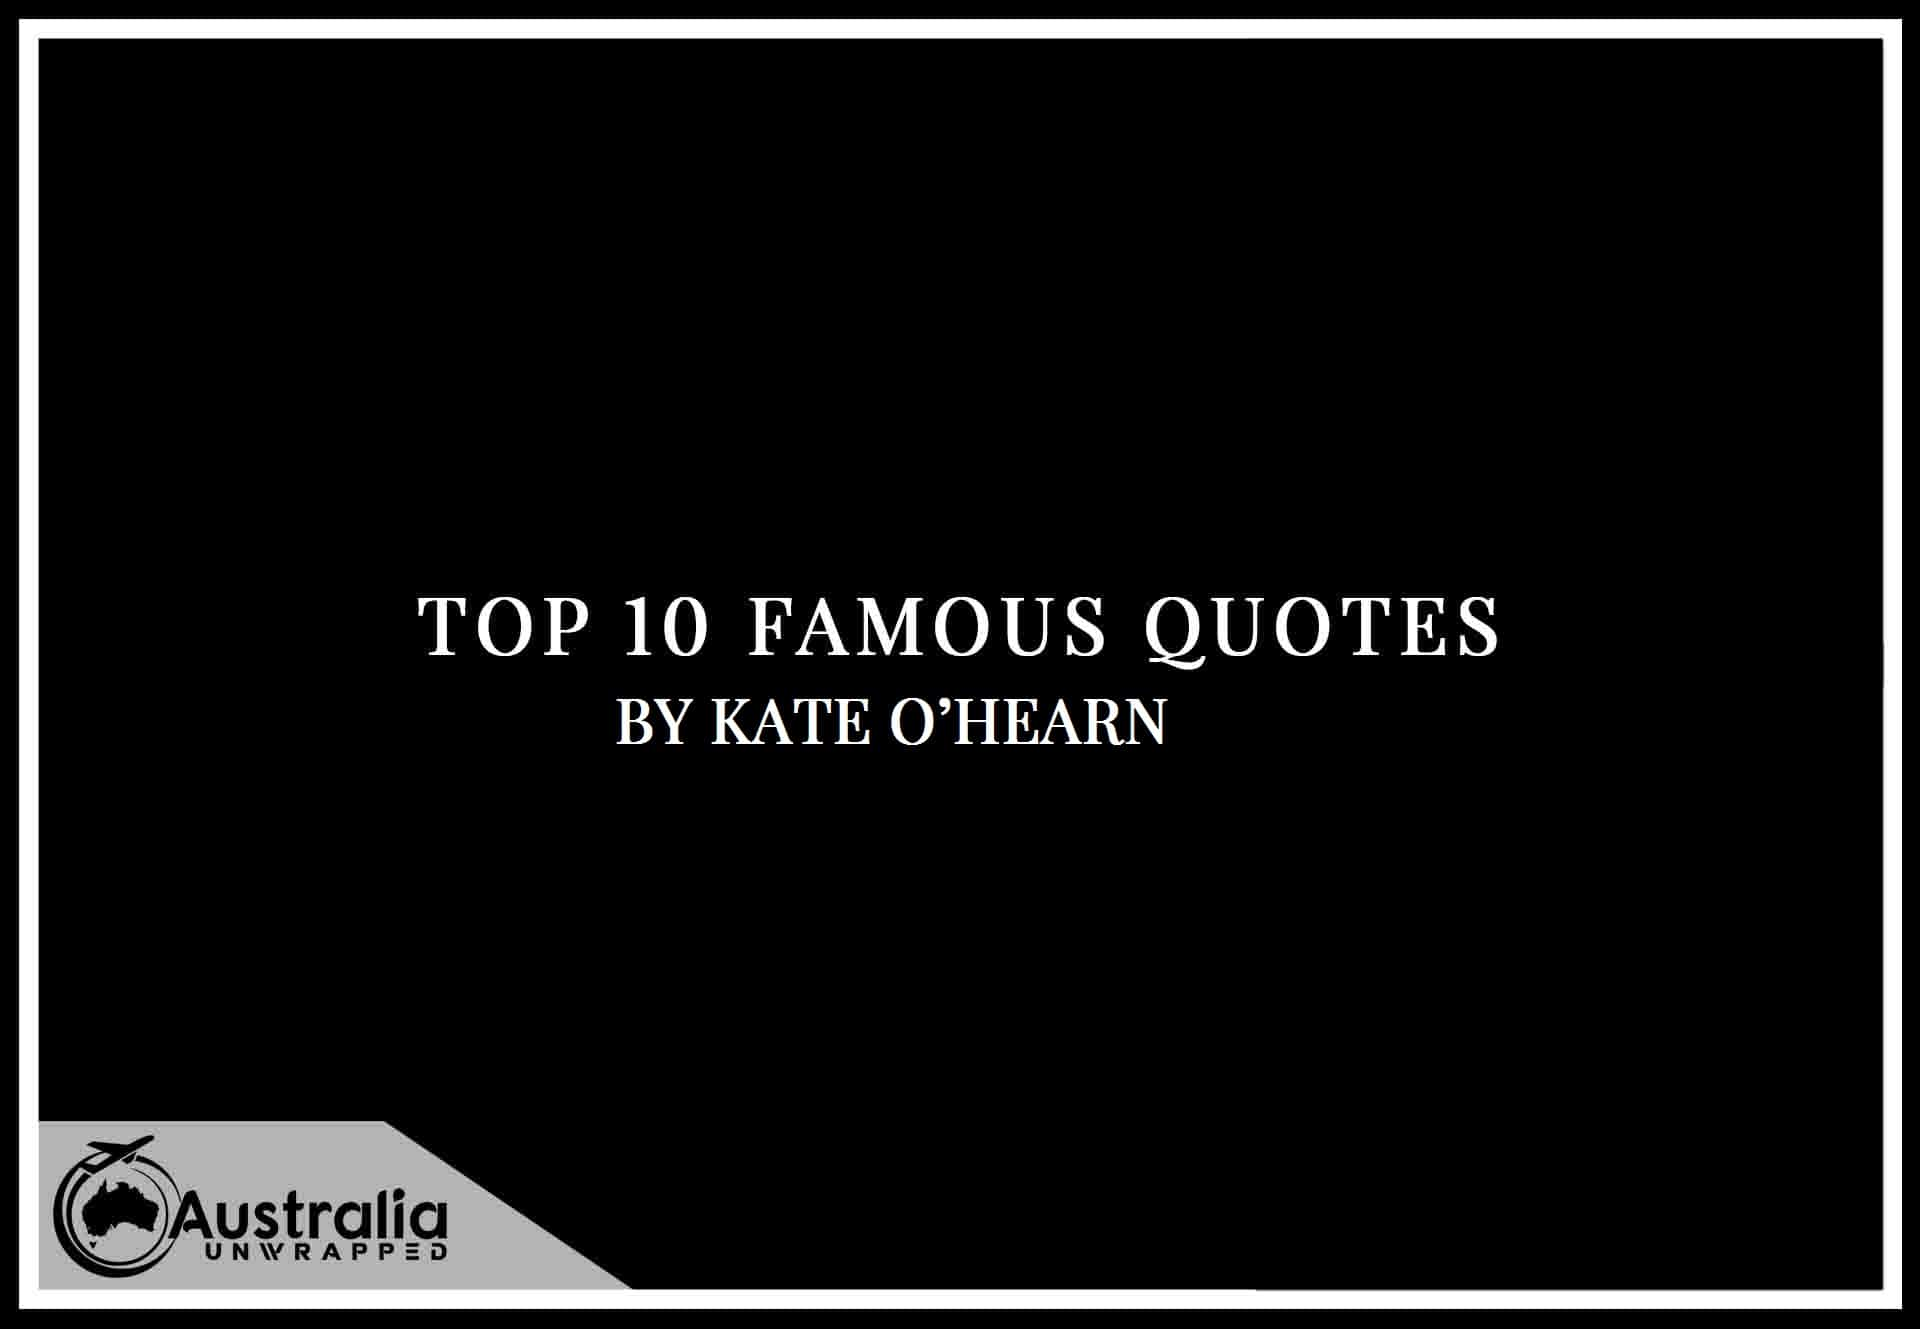 Kate O'Hearn's Top 10 Popular and Famous Quotes